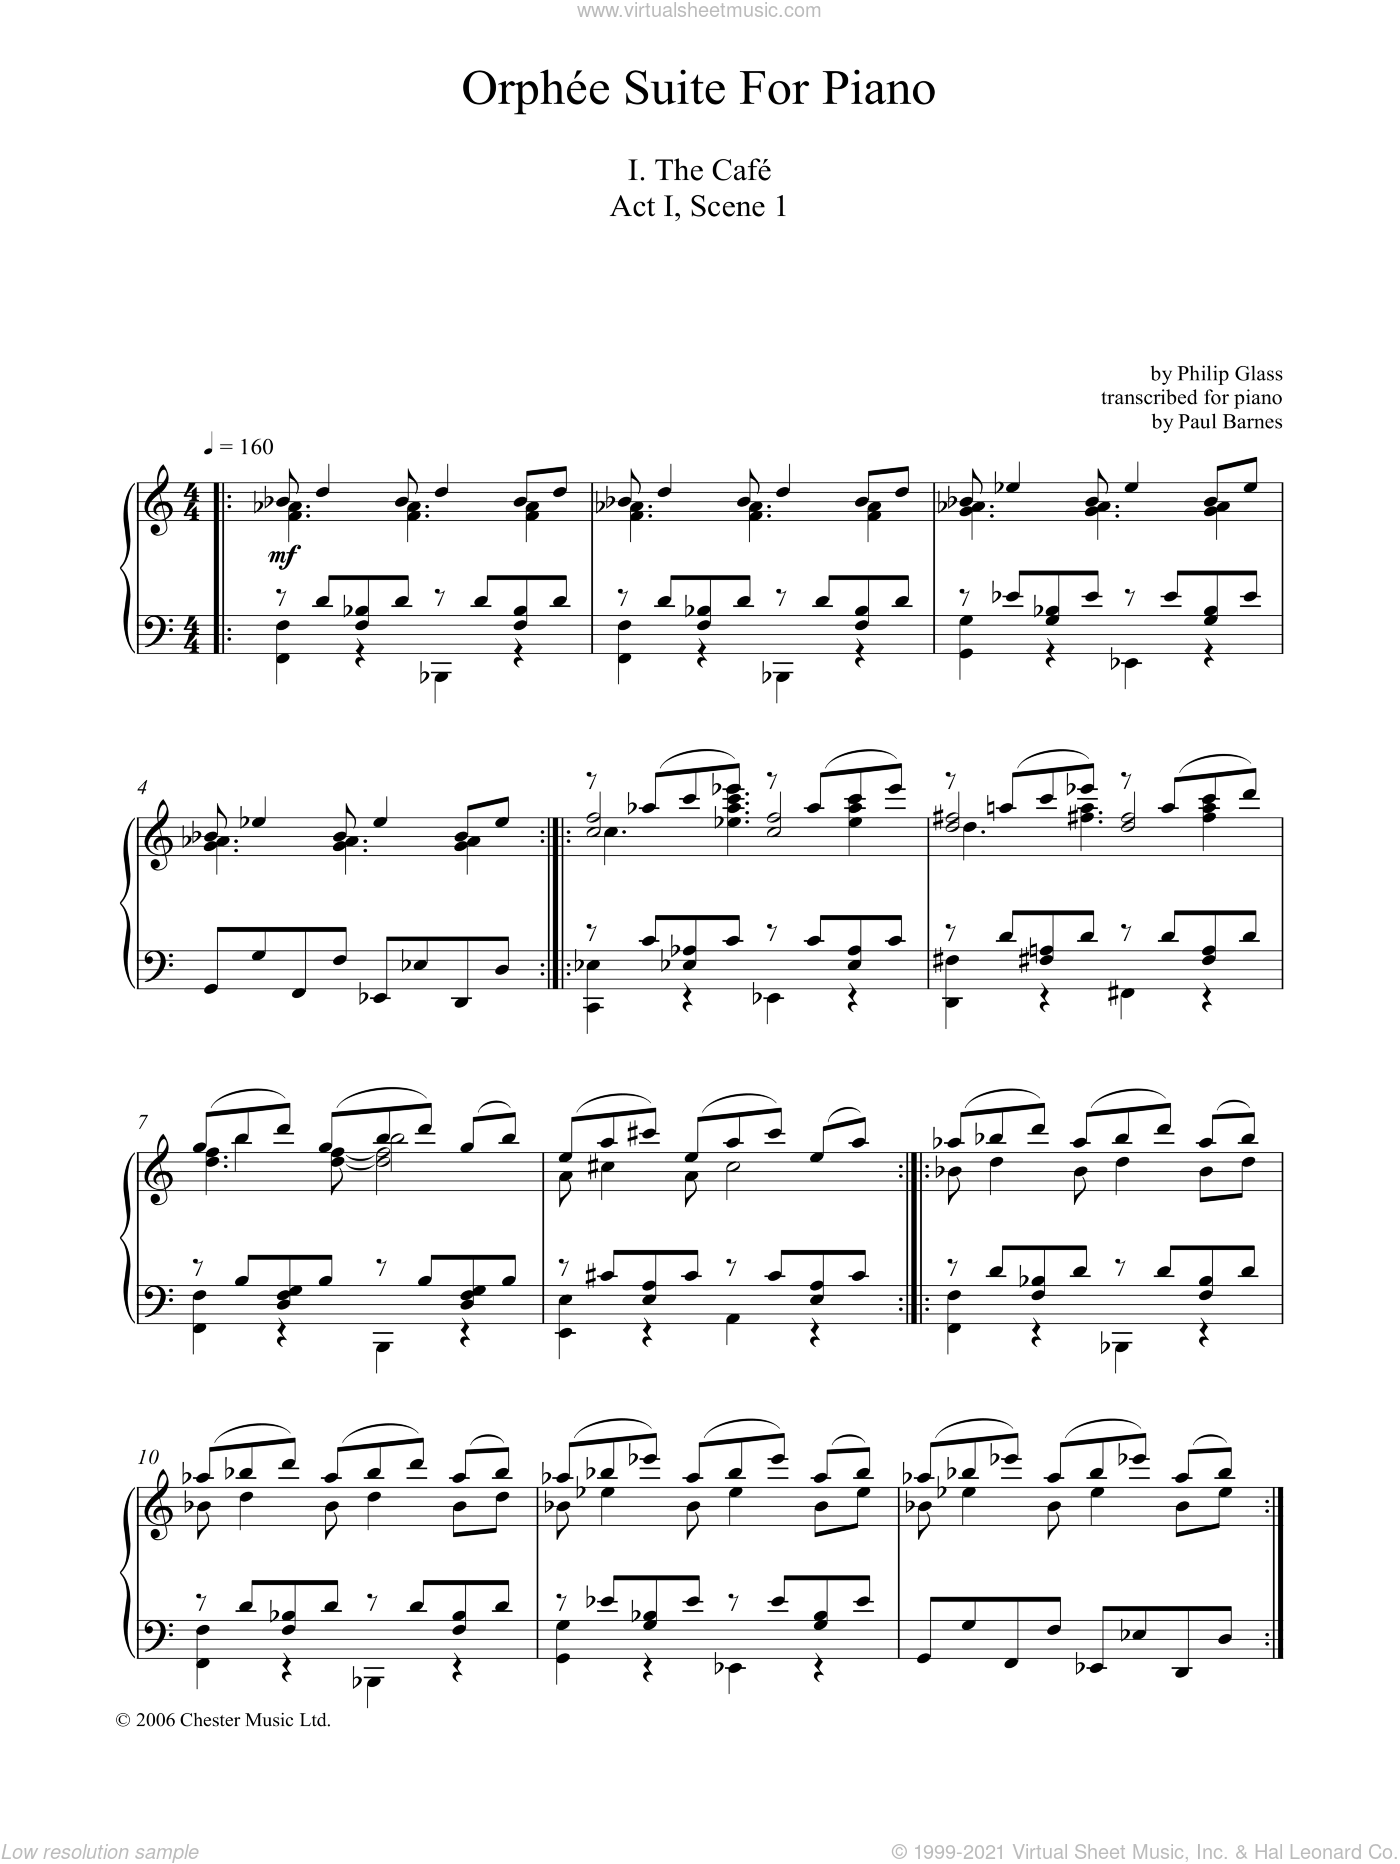 Orphee Suite For Piano, I. The Cafe, Act I, Scene 1 sheet music for piano solo by Philip Glass, classical score, intermediate skill level